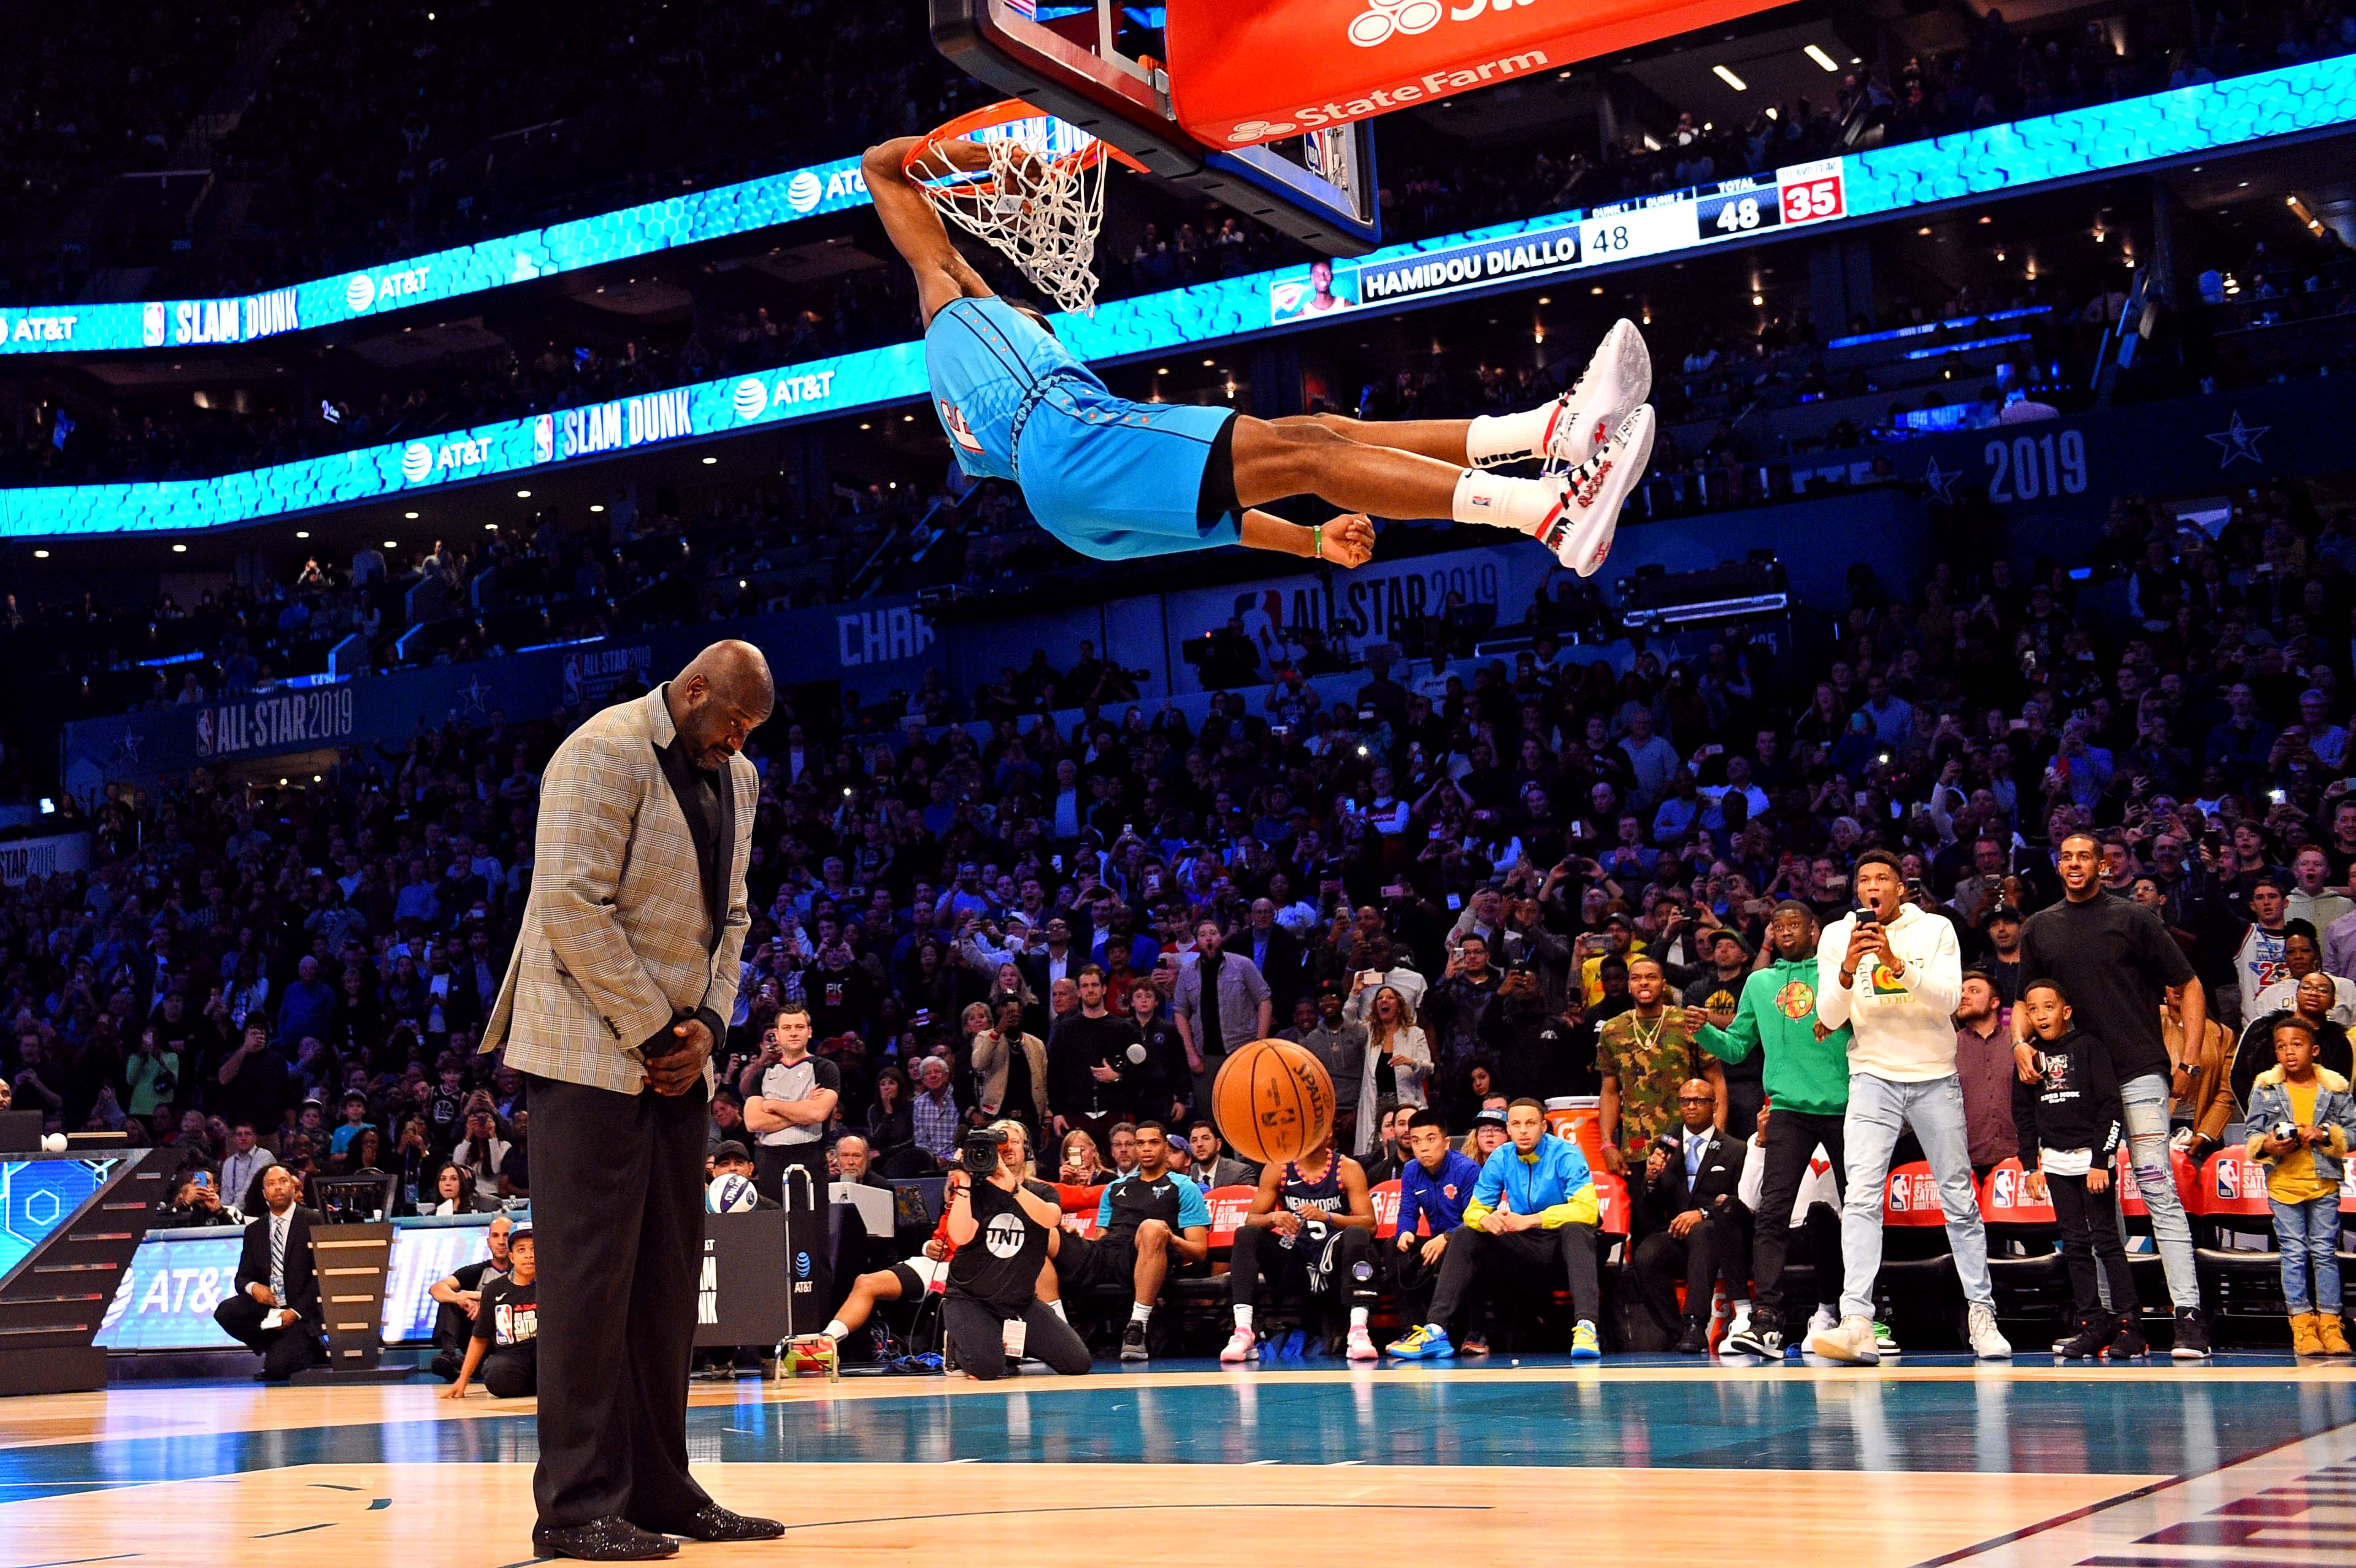 The 12 dunks in the 2019 Slam Dunk Contest, ranked